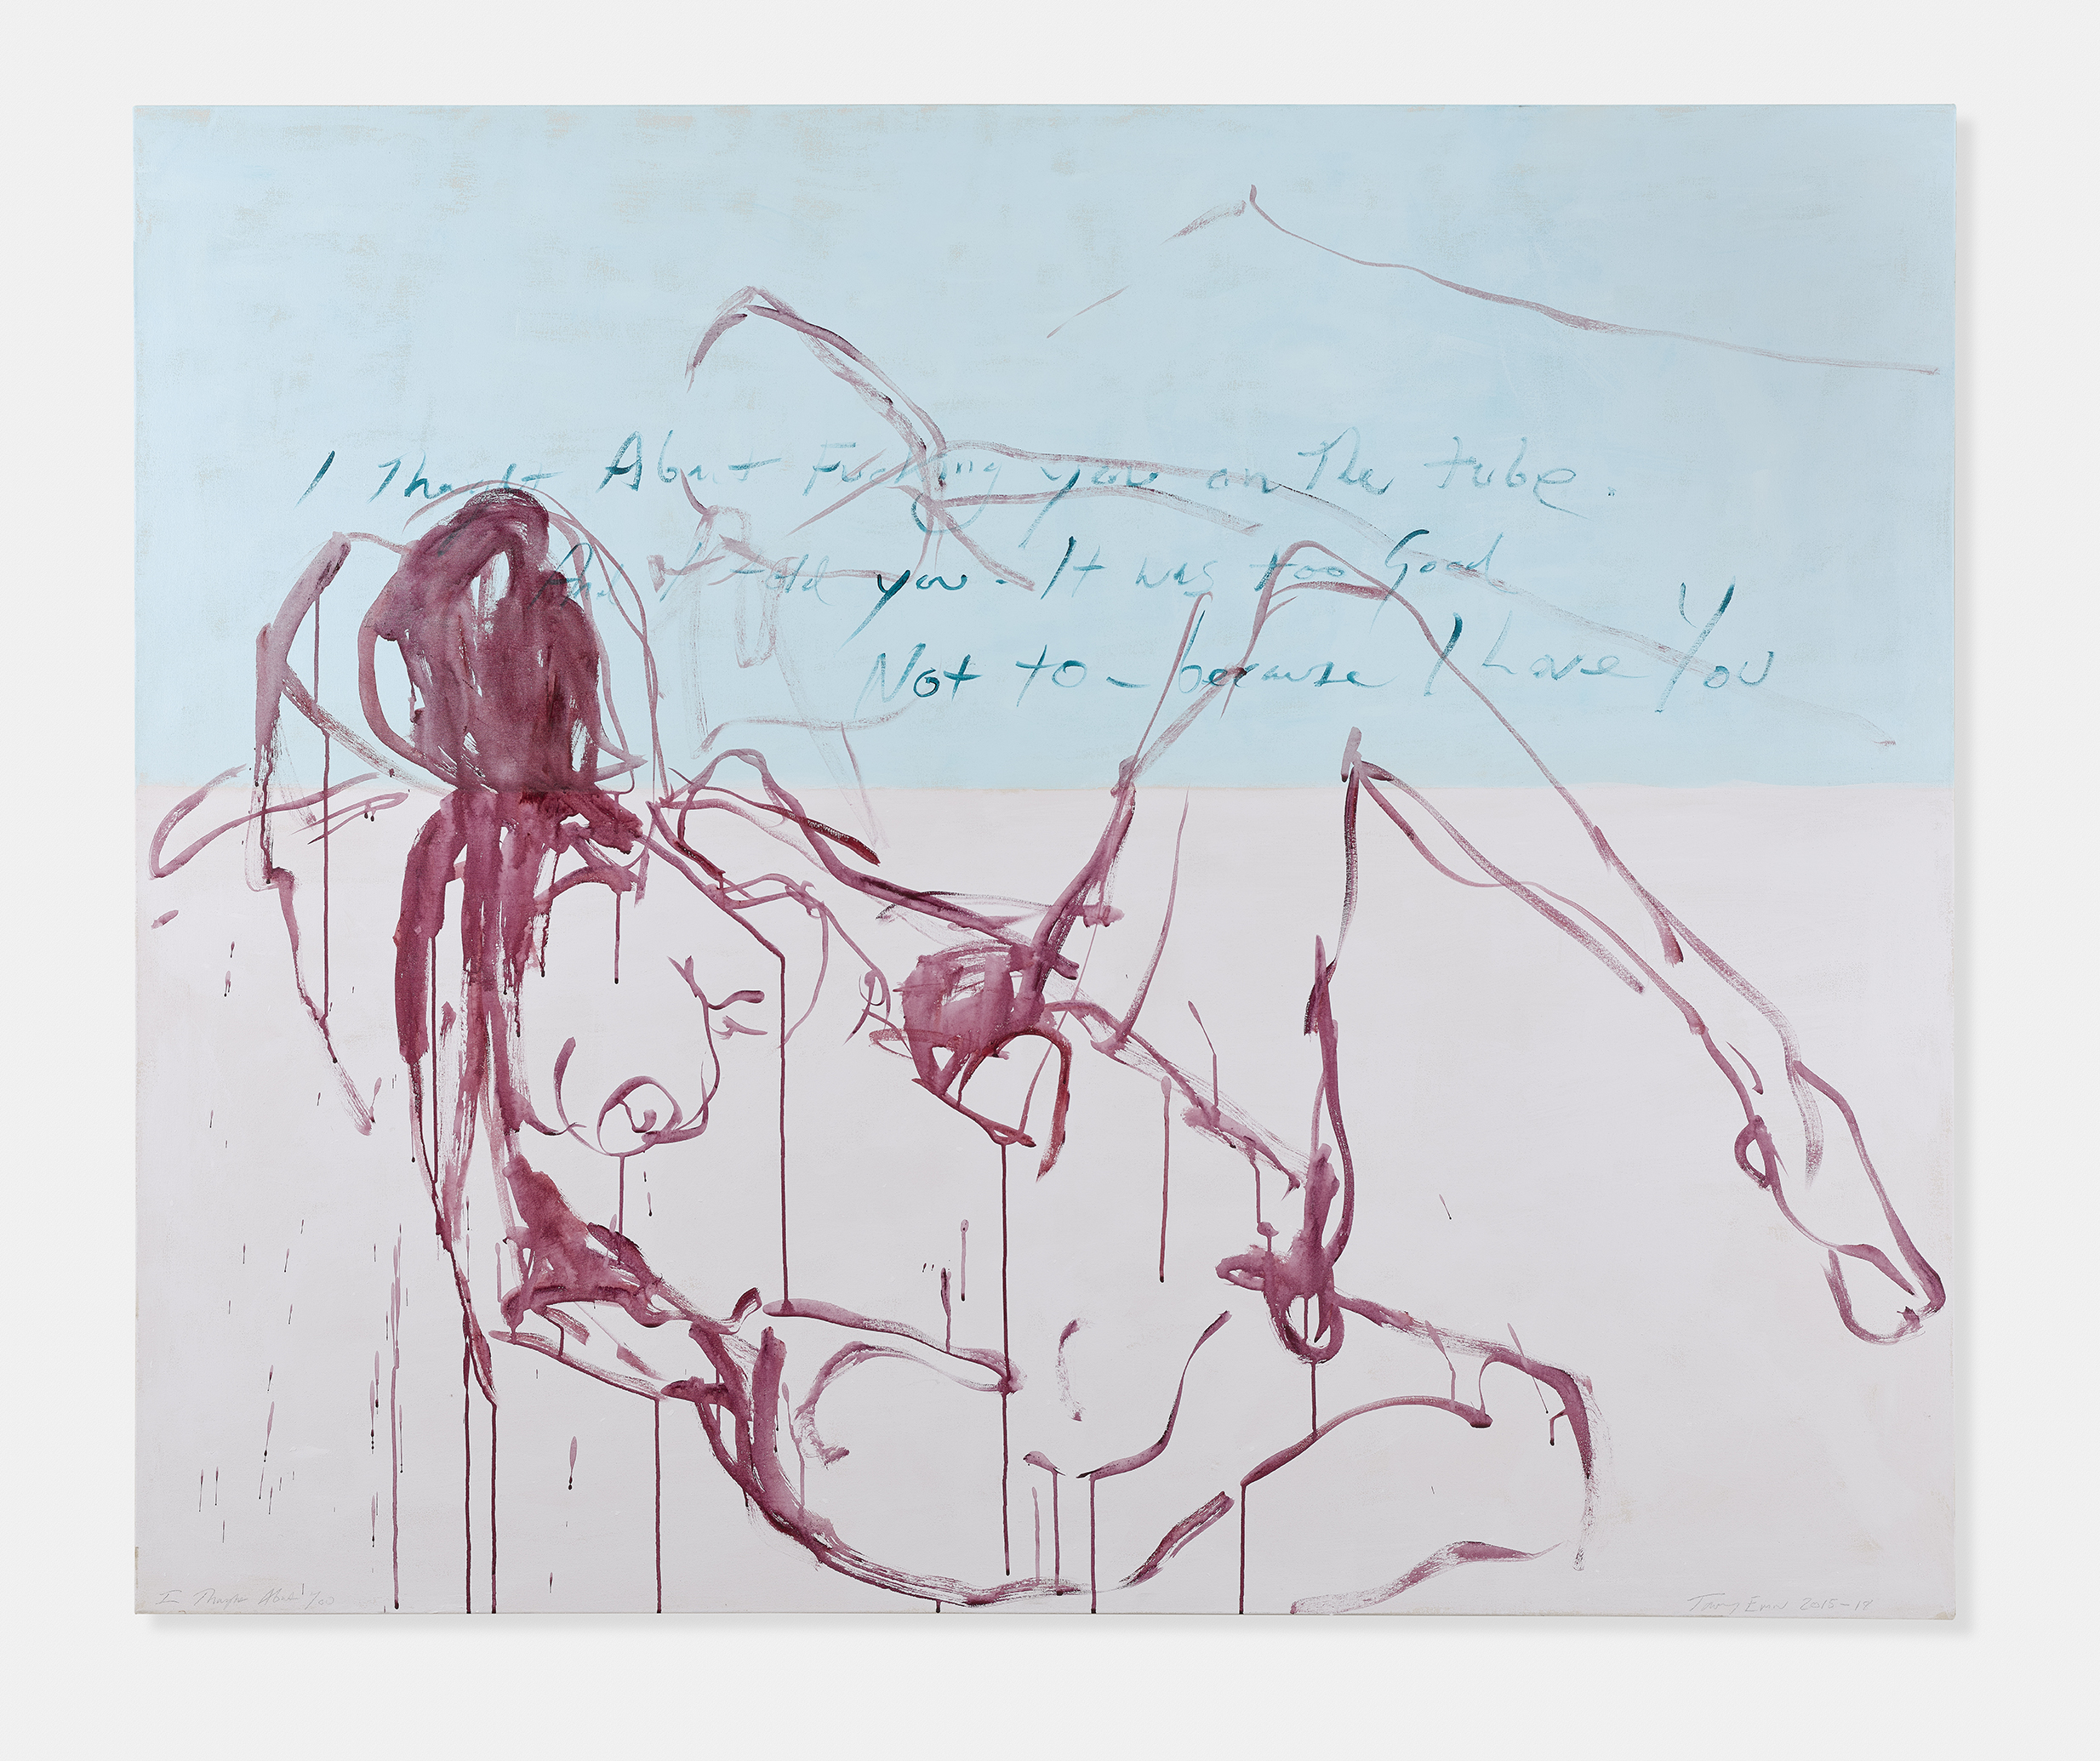 Courtesy Tracey Emin studio.